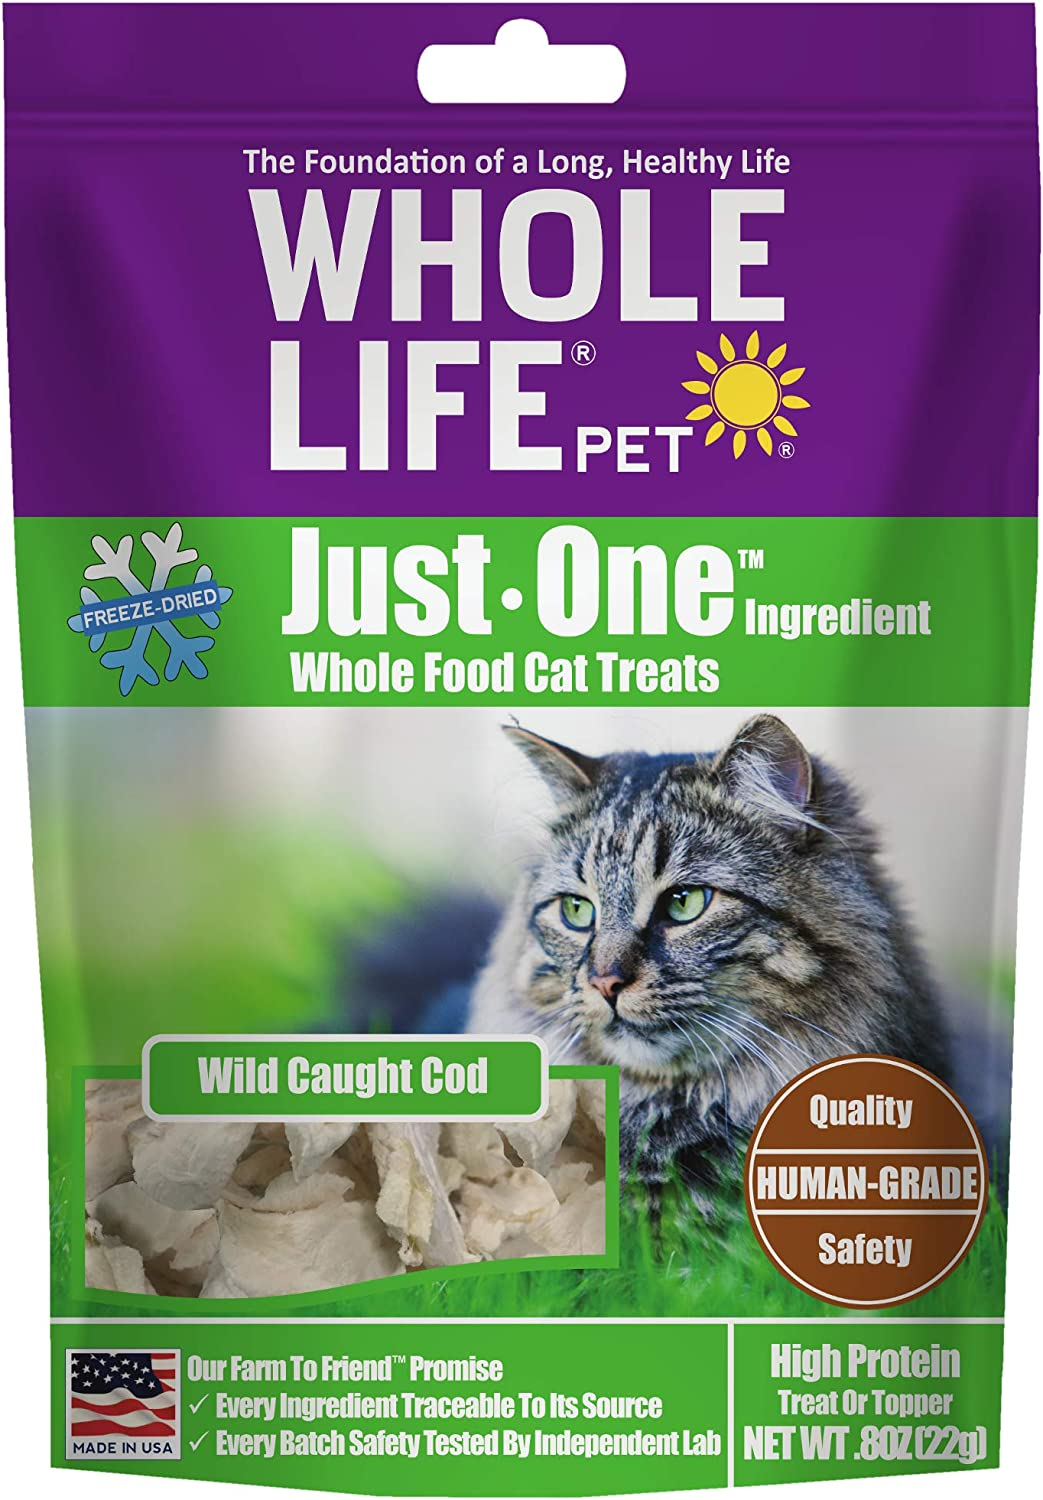 Whole Life Pet USA Sourced and Produced Human Grade Freeze Dried Boneless, Skinless Wild Cod Filet Cat Treat, Protein Rich for Training, Picky Eaters, Digestion, Weight Control